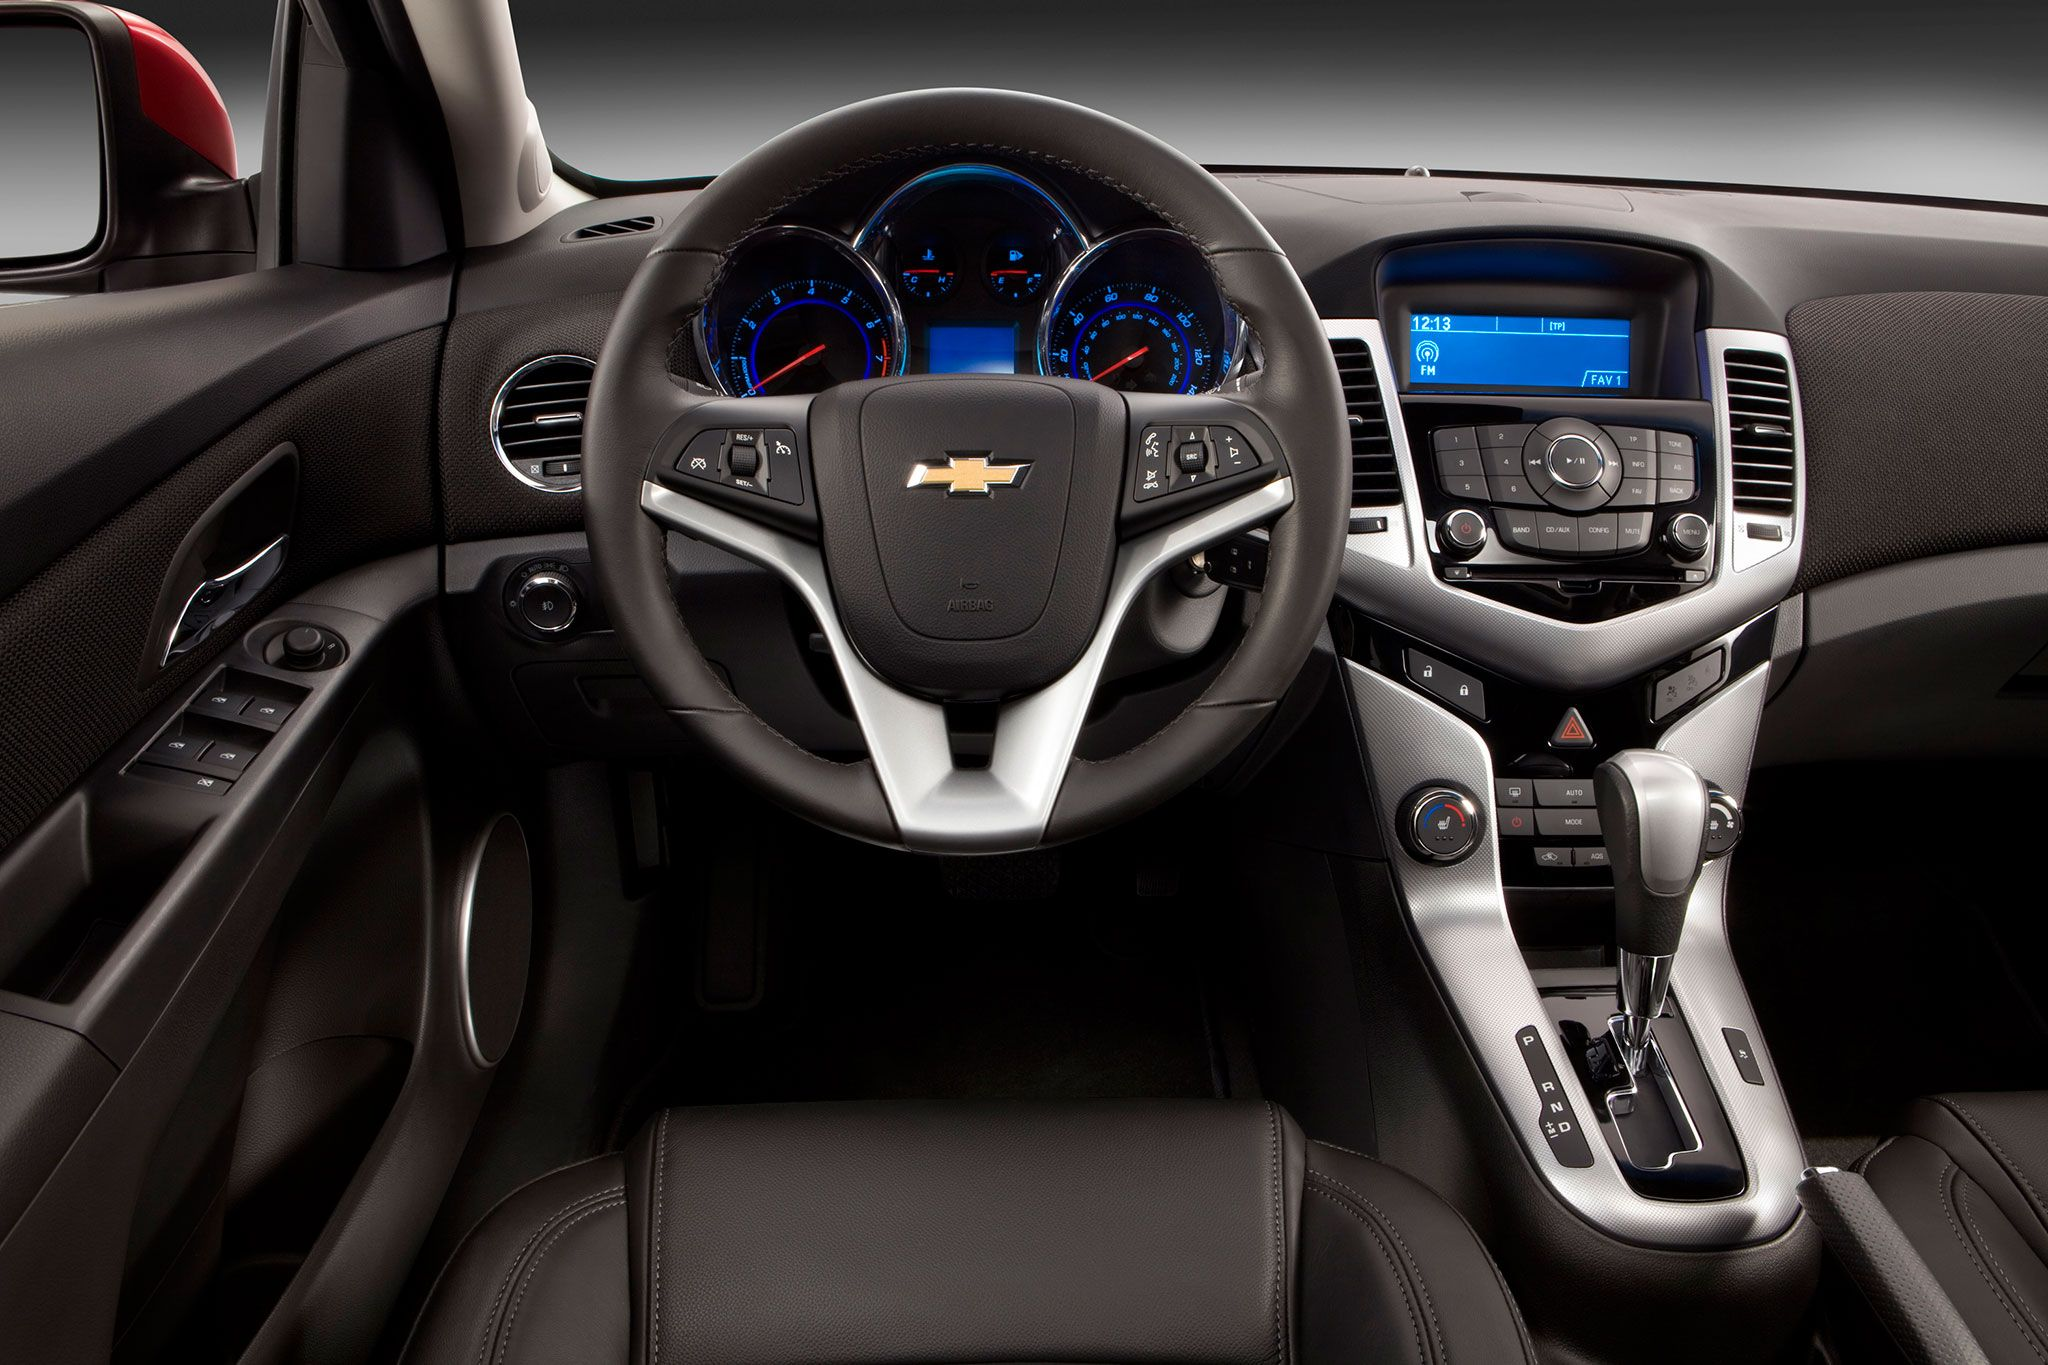 Lovely 2014 Chevrolet Cruze Interior Design Ideas